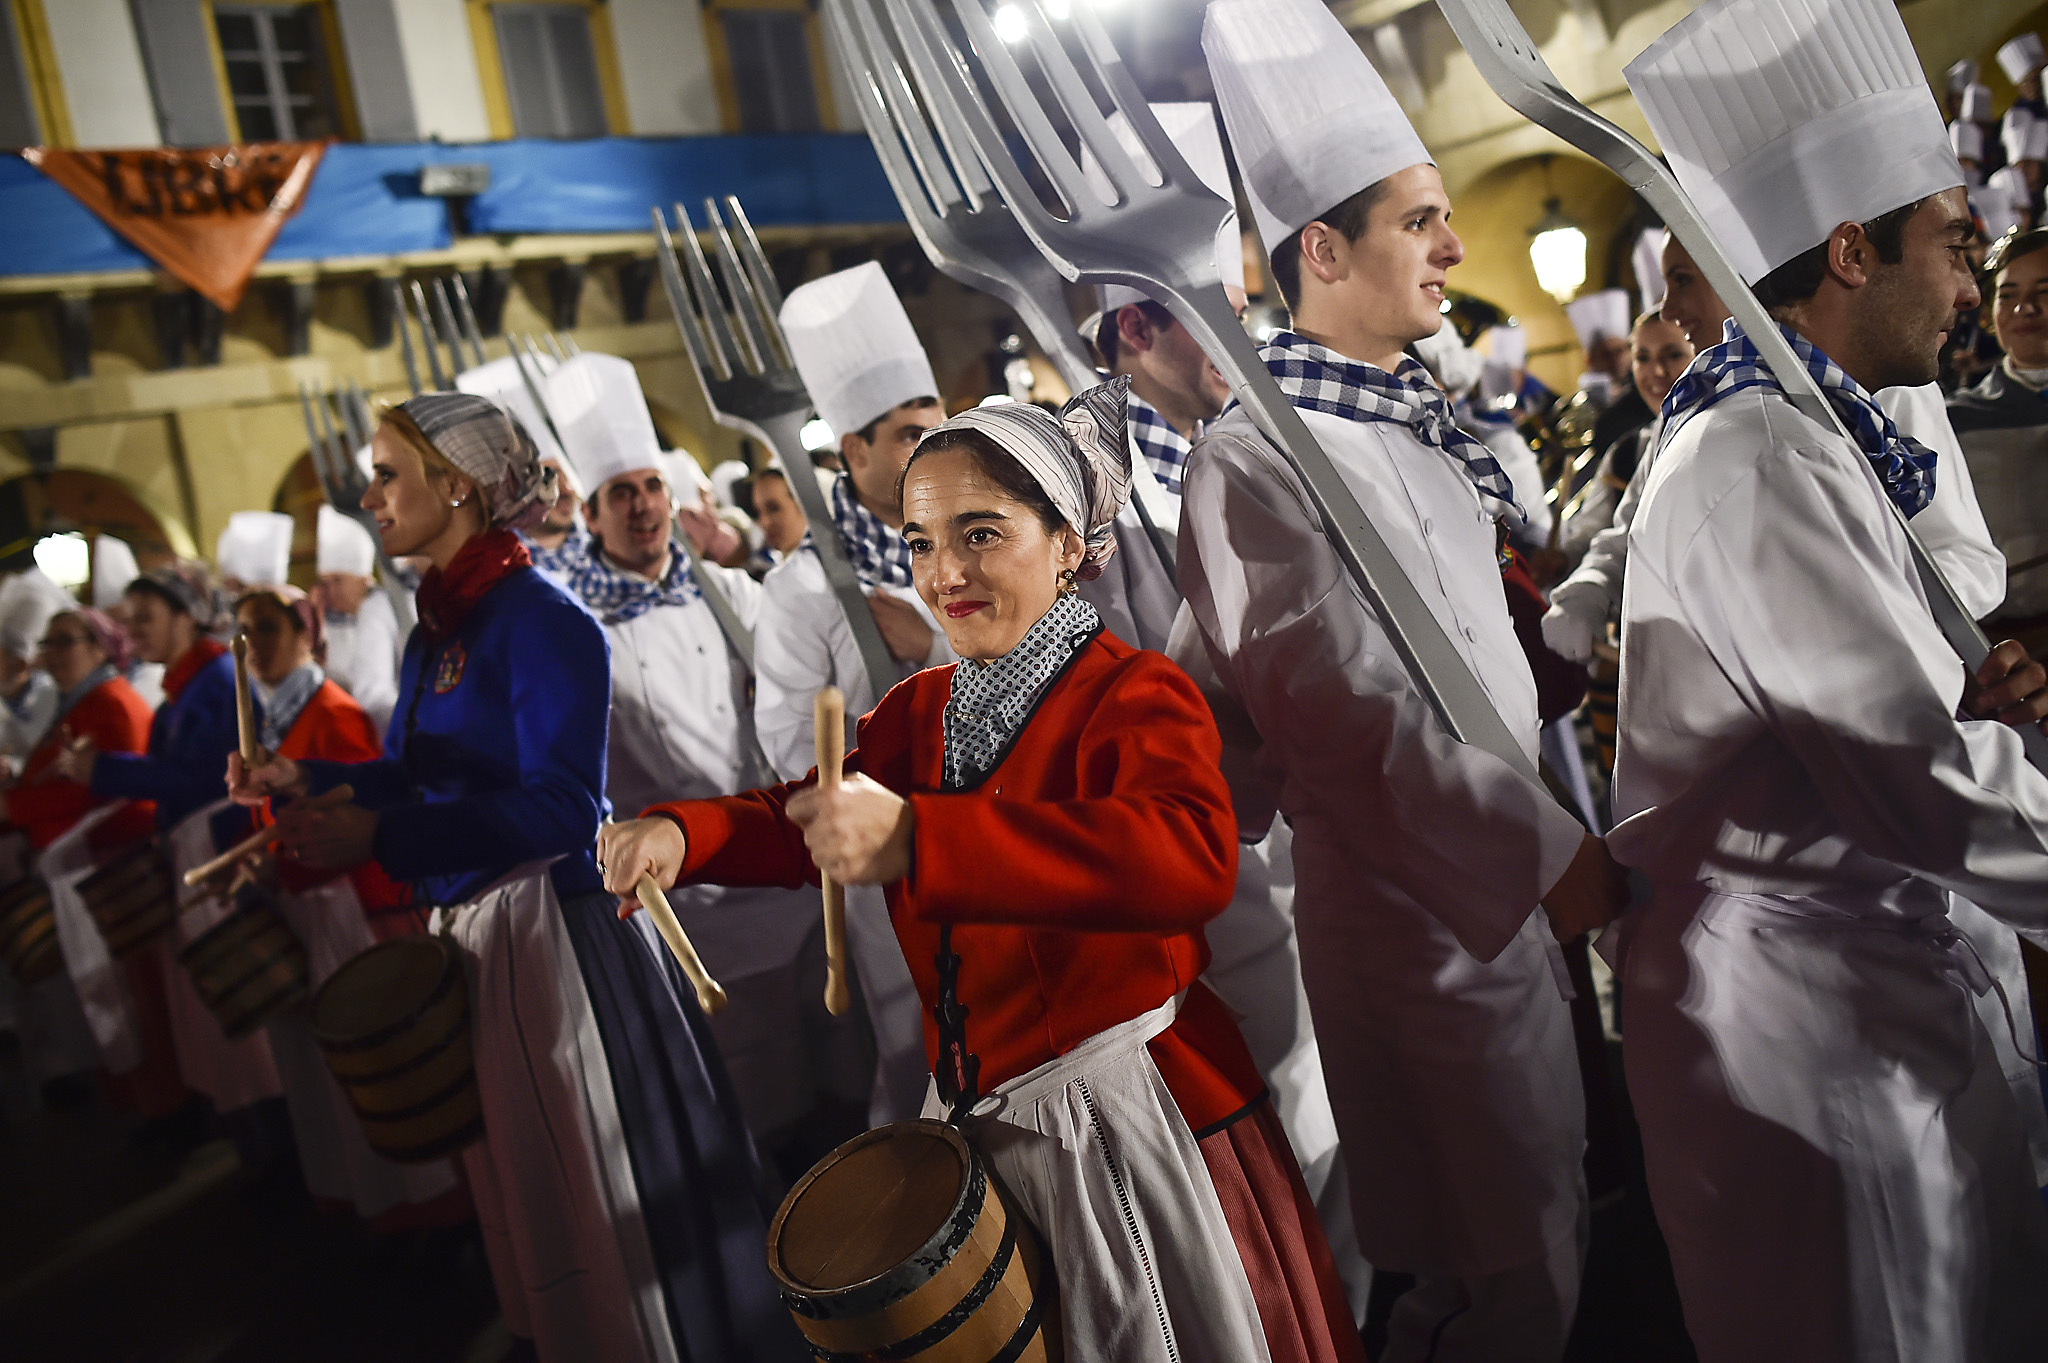 """Tamborilleros'' wearing their uniforms take part in the opening ceremony of the main day of the traditional ""La Tamborrada"" of San Sebastian feasts in the Basque city of San Sebastian, northern Spain, Wednesday, Jan. 20, 2016. From midnight to midnight companies of perfectly uniformed marchers parade through the streets of San Sebastian playing drums and barrels in honor of their patron saint. (AP Photo/Alvaro Barrientos)"